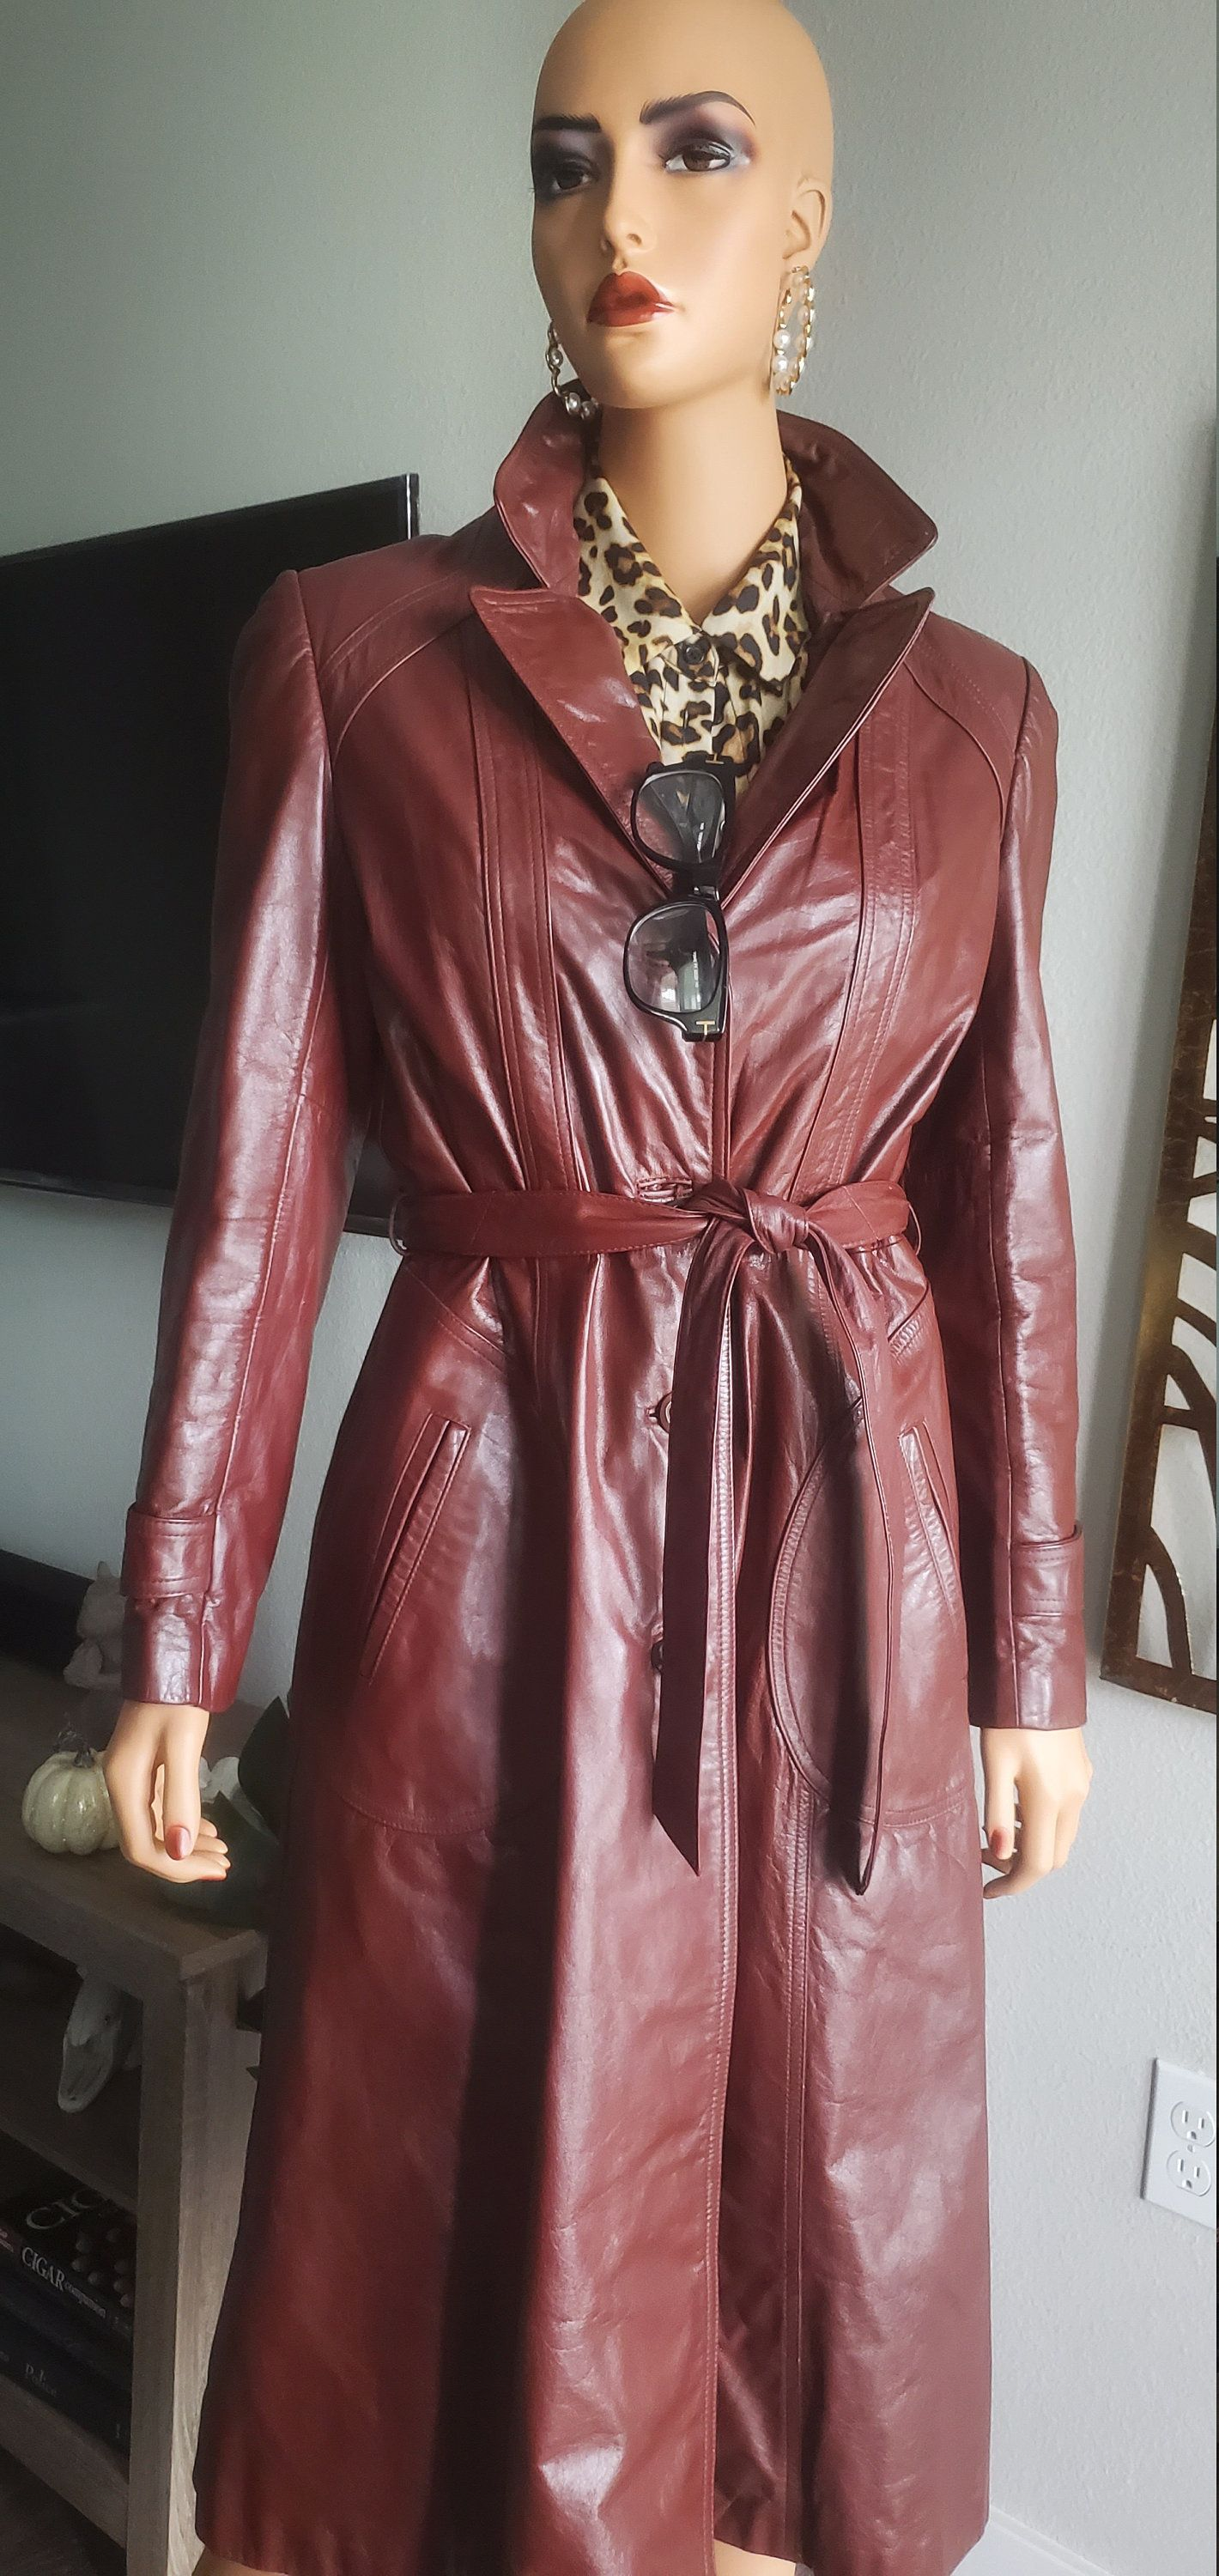 Wilson Red Leather Womens Coat Leather Red Coat 90s Leather Red Coat Wilson Leather  Coats Jackets Clothing